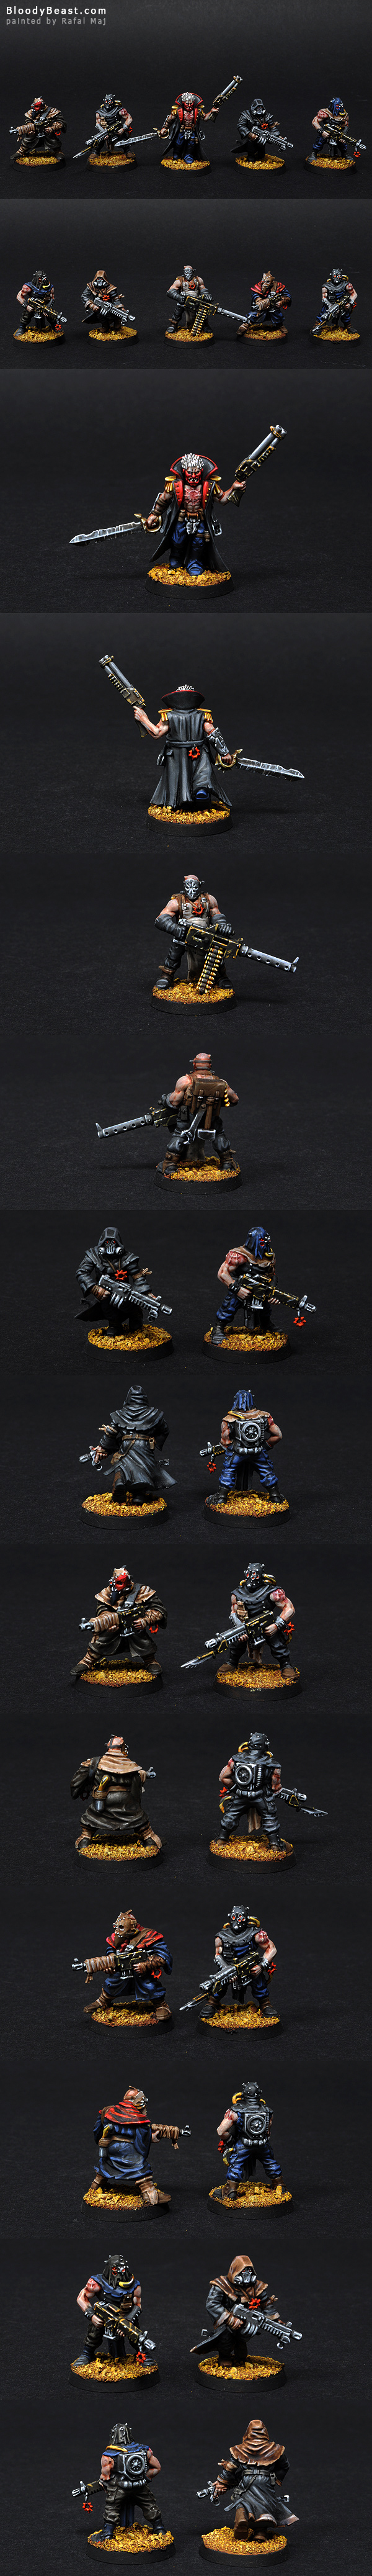 Chaos Space Marines Cultists with Heavy Stubber painted by Rafal Maj (BloodyBeast.com)